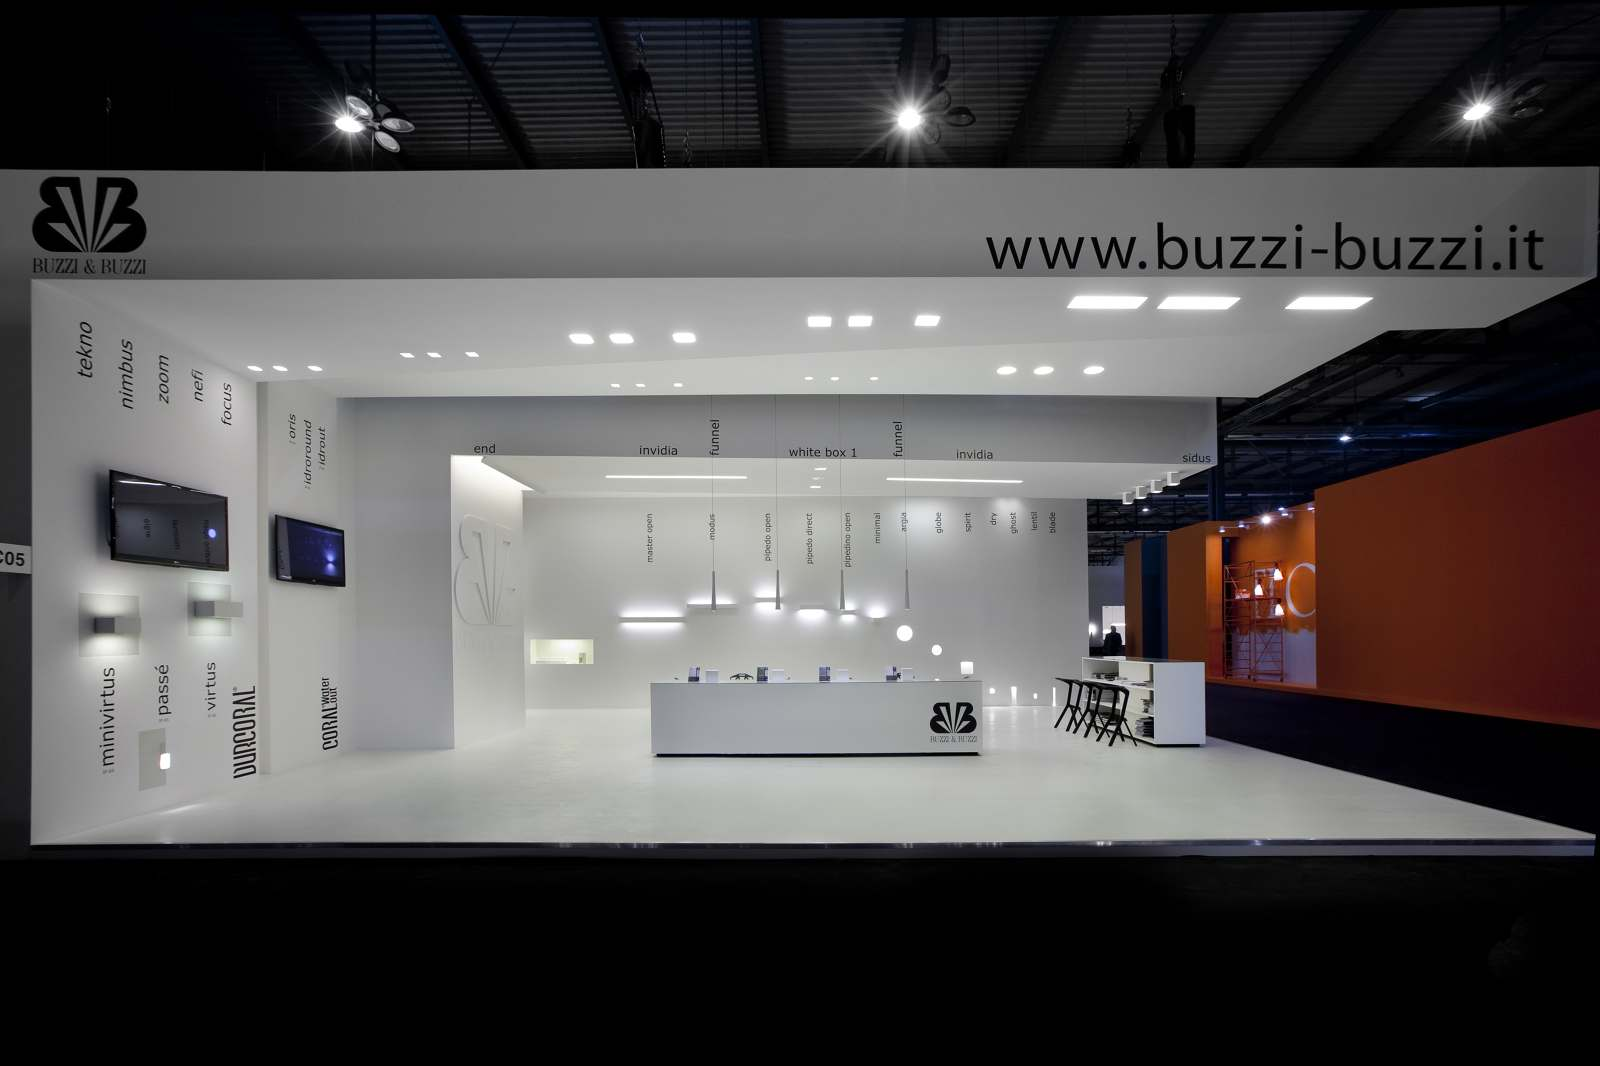 Buzzi & Buzzi Lighting buzzi & buzzi - chiara fanigliulo architect